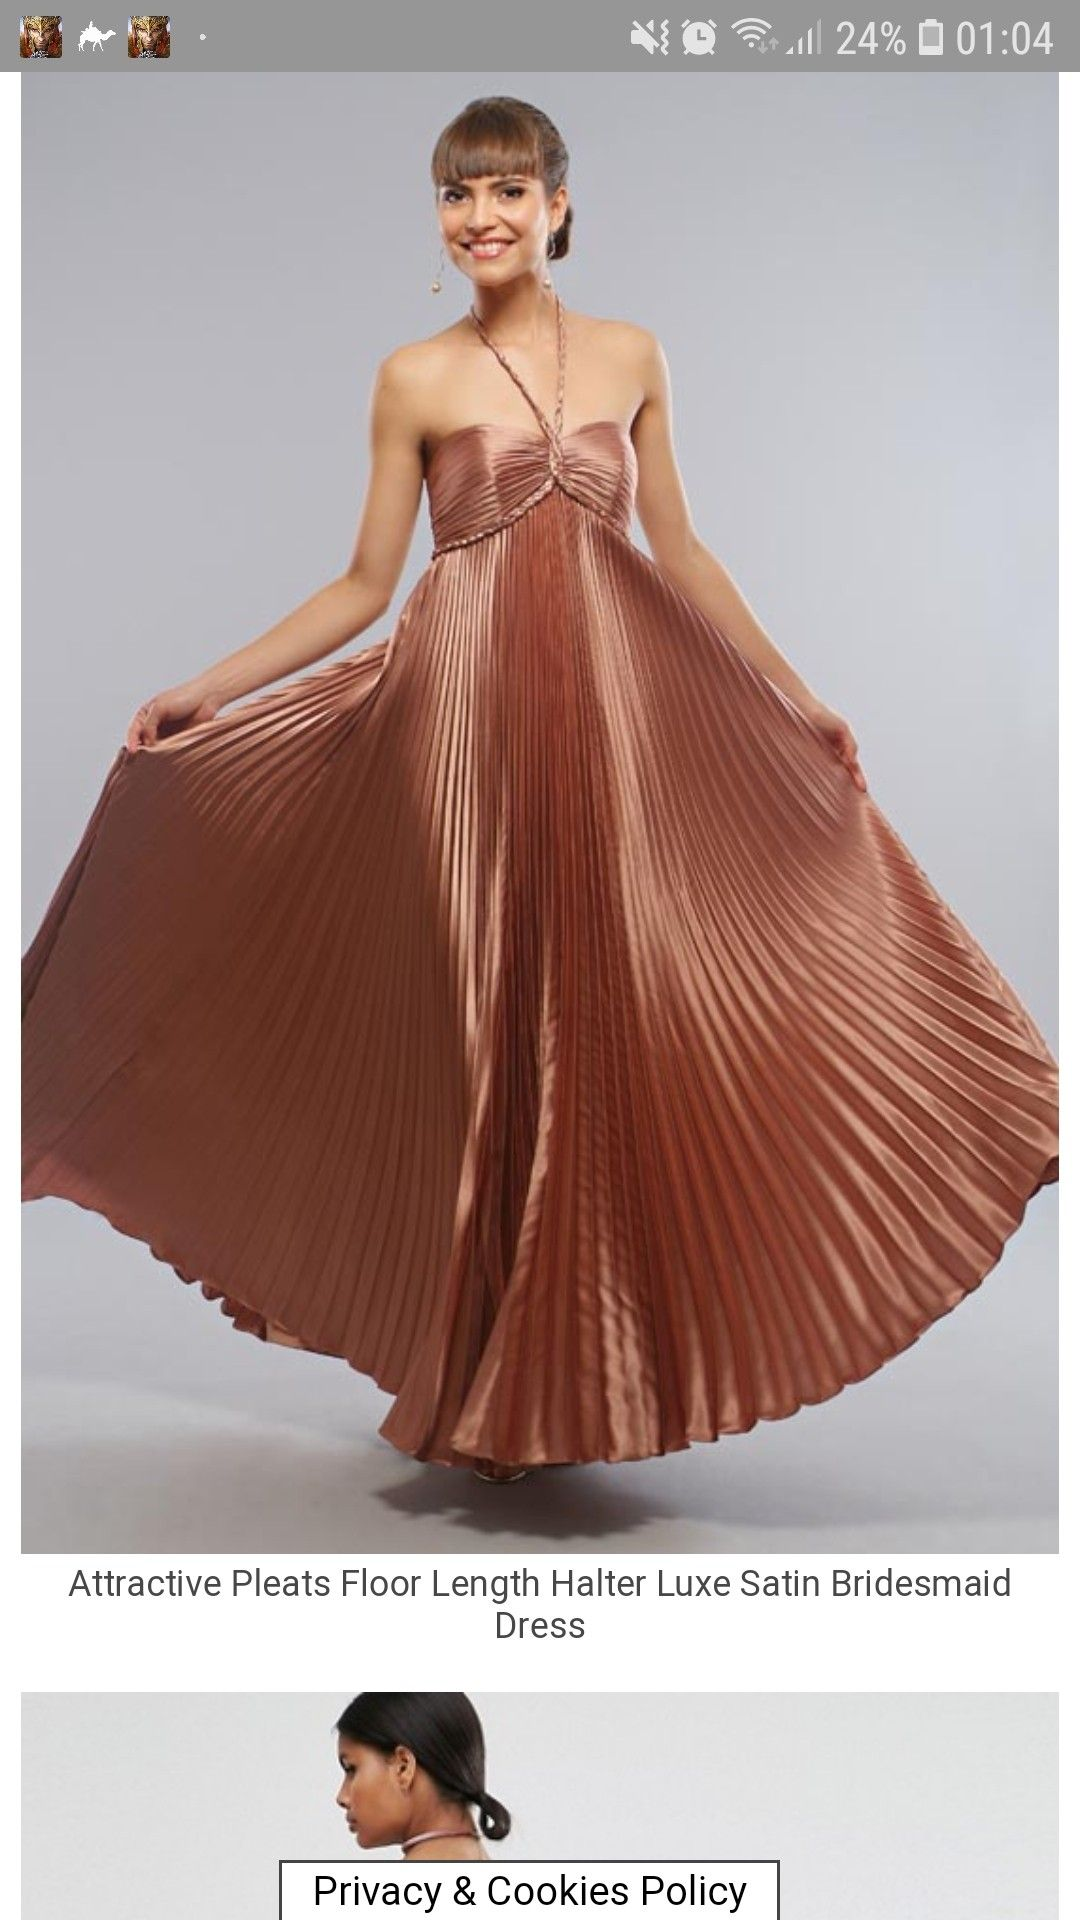 70bc500abac7 Full Length Skirts, Satin Blouses, Pleated Skirts, Satin Dresses, Silk  Satin,